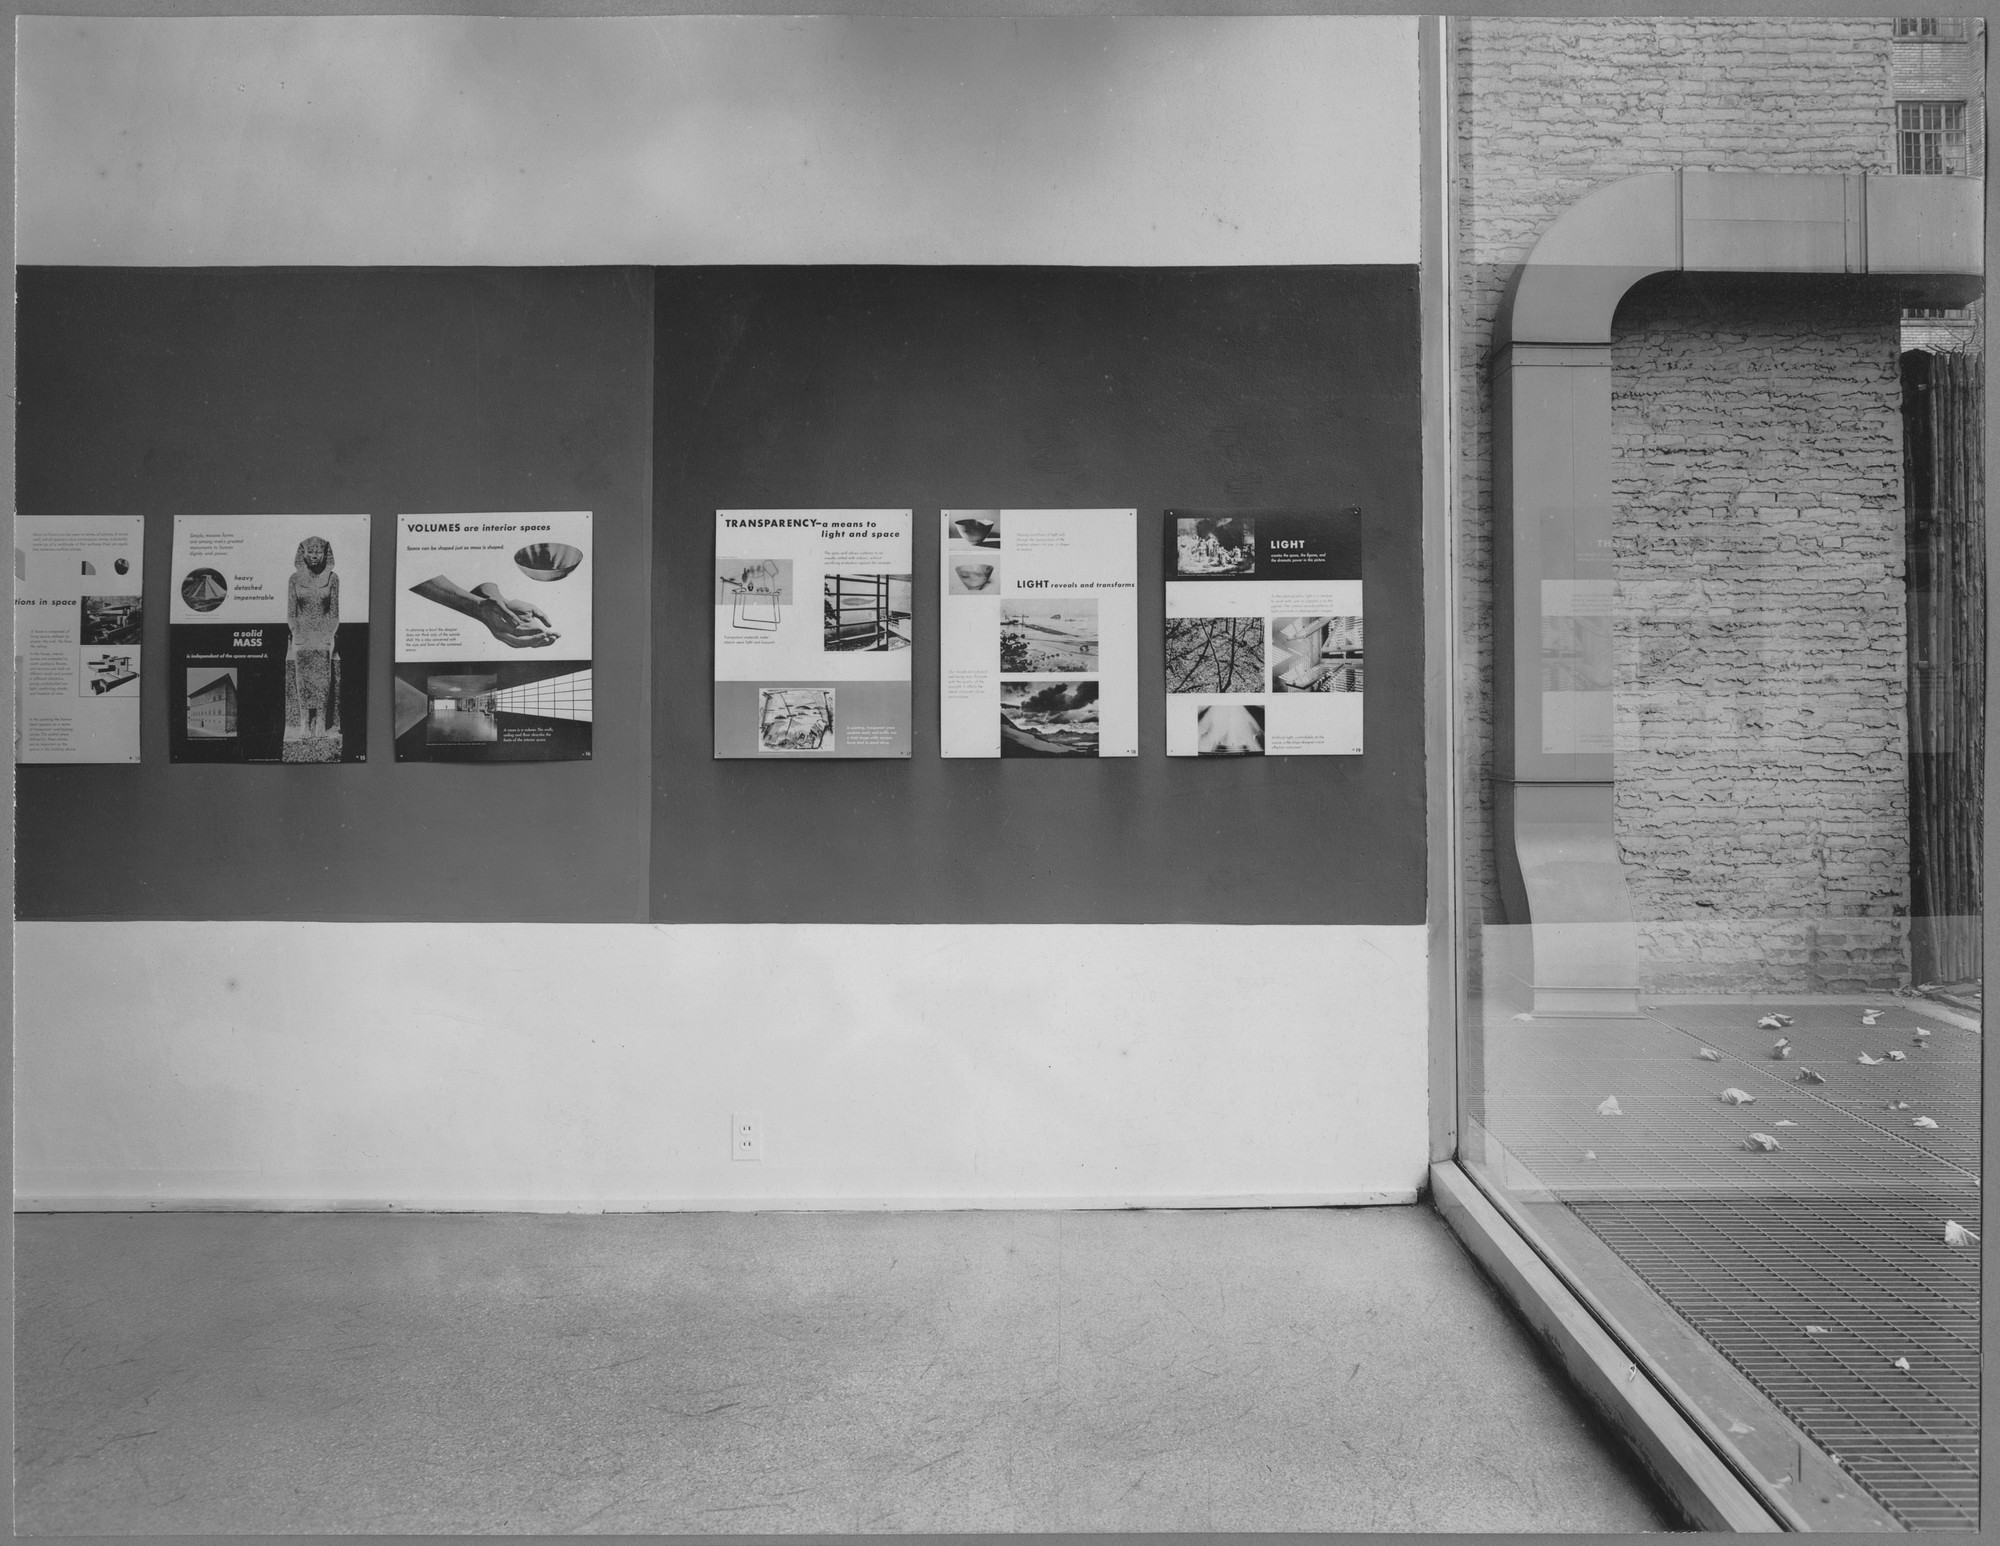 "Installation view of the exhibition, ""Elements of Design."" October 23, 1945–November 15, 1945. Photographic Archive. The Museum of Modern Art Archives, New York. IN299.1. Photograph by Soichi Sunami."